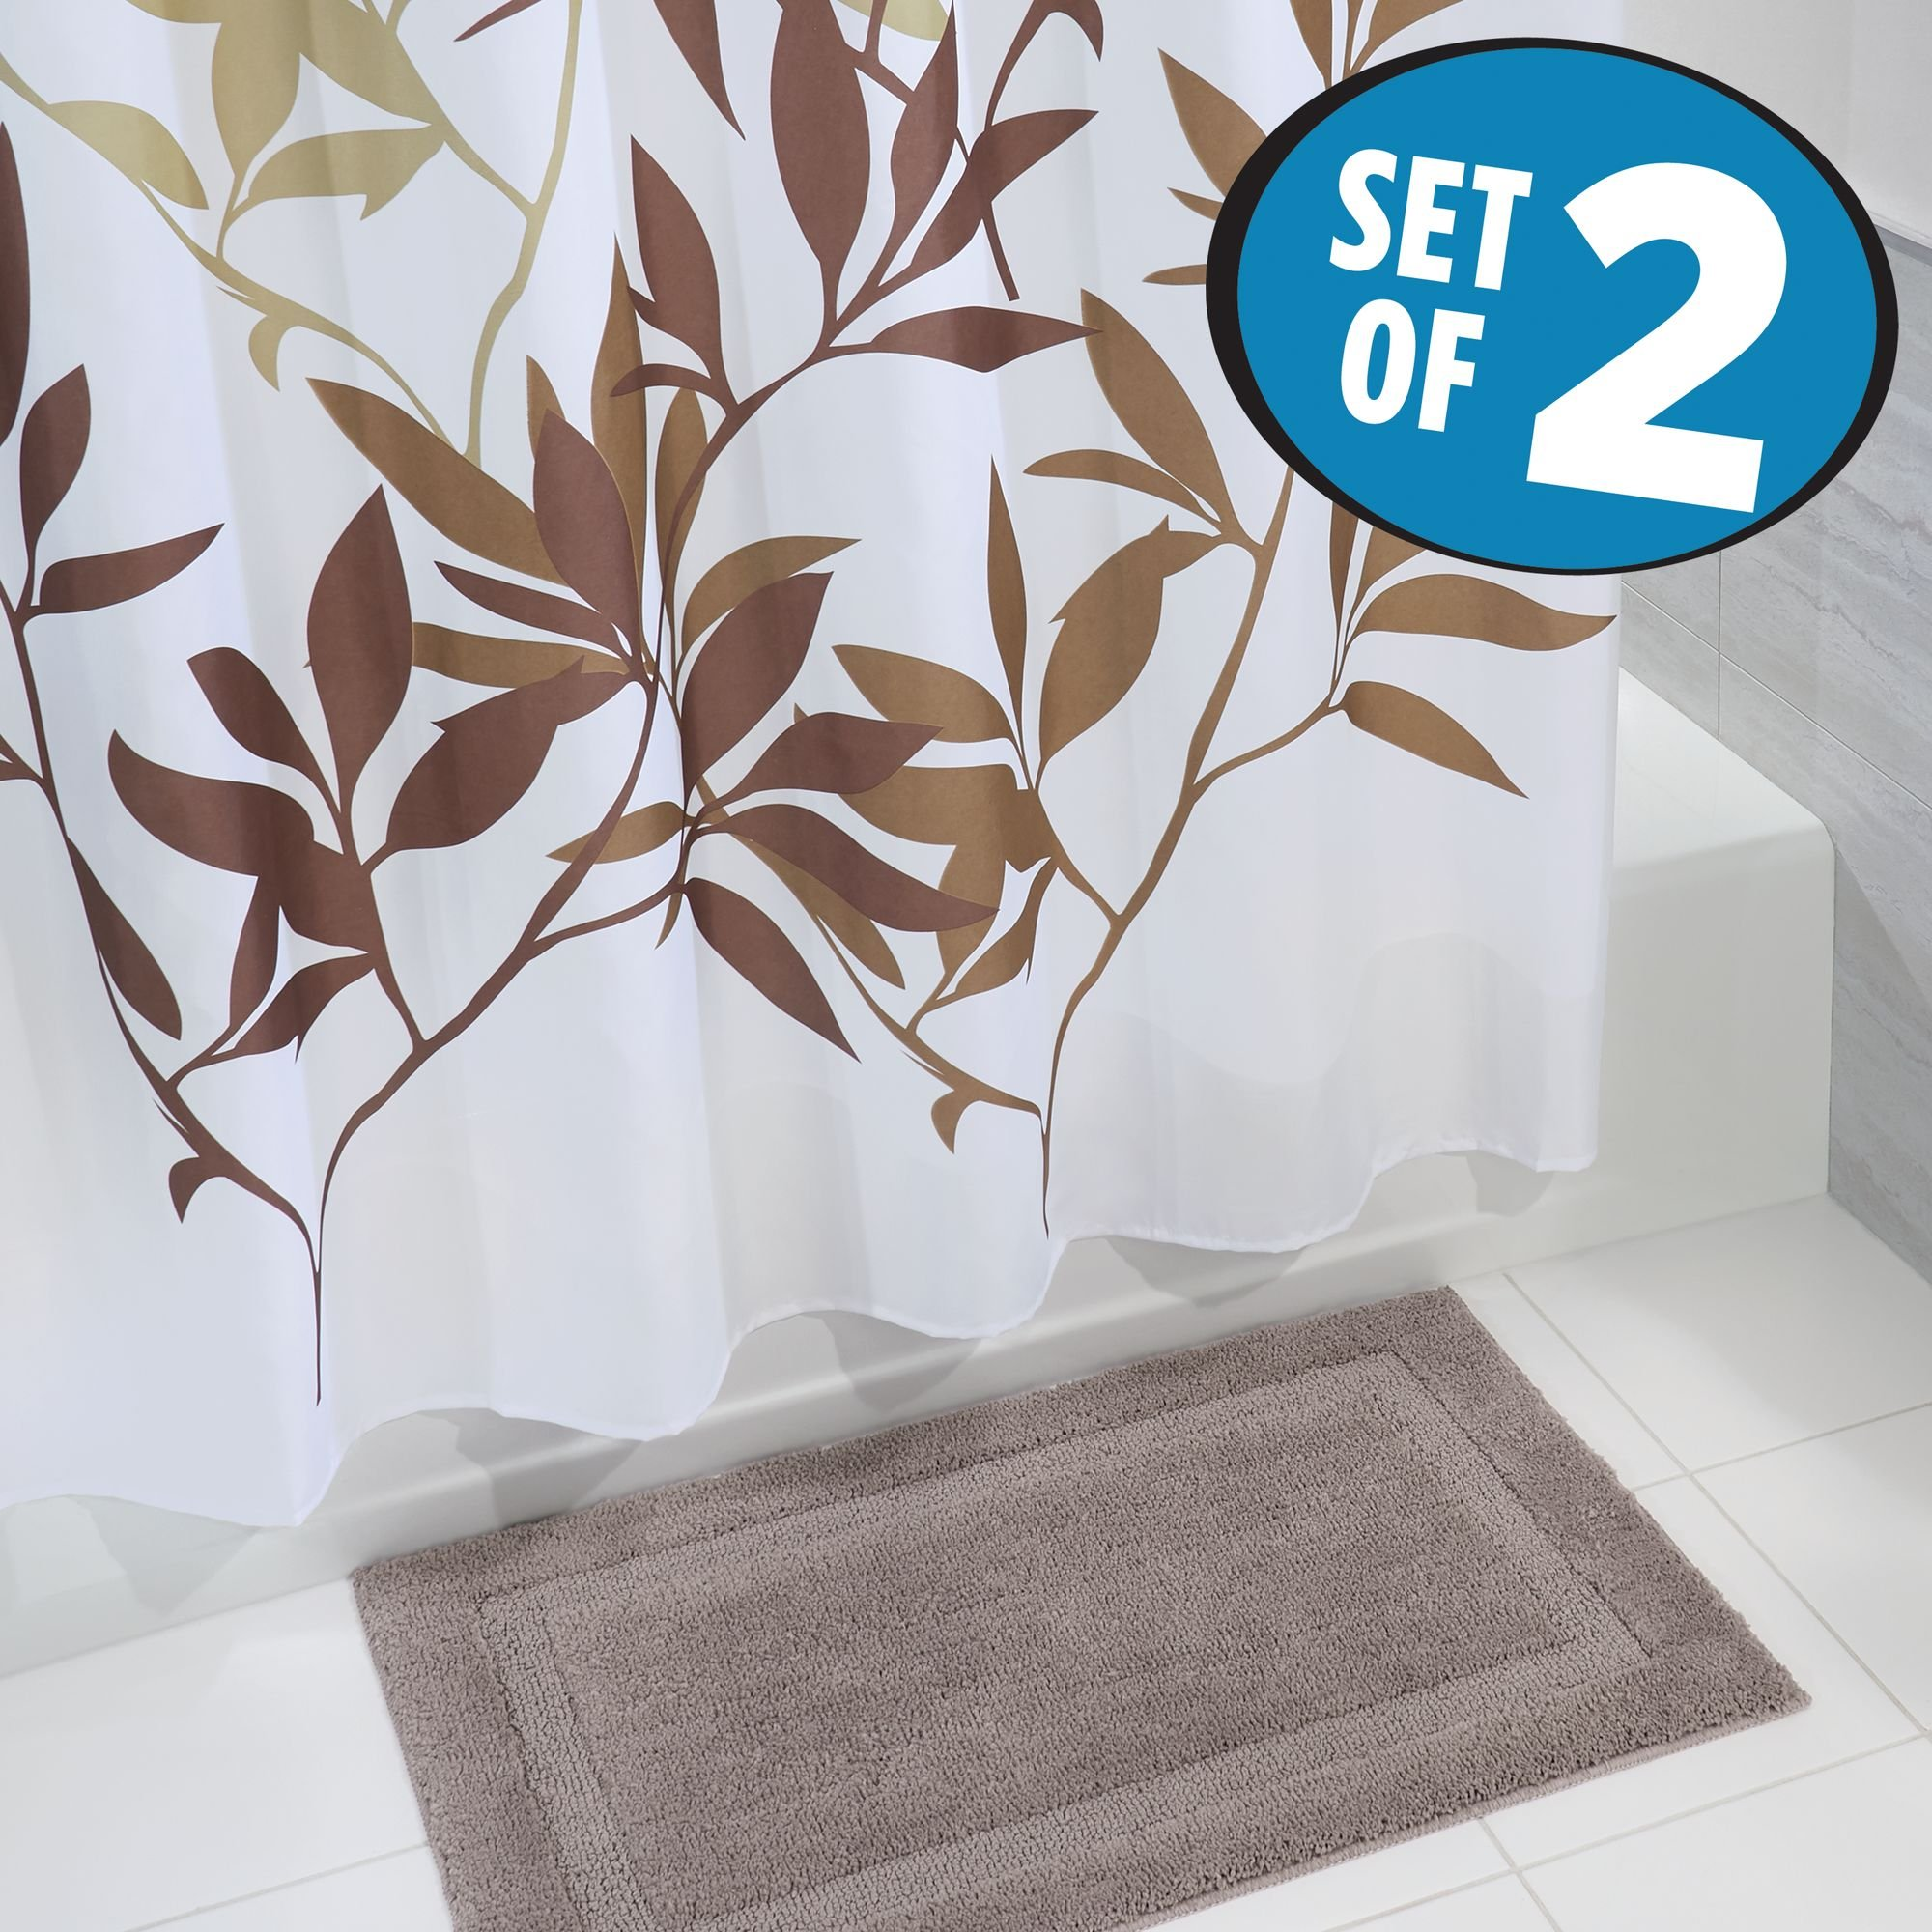 mDesign Bathroom Accessory Set, Leafy Shower Curtain, Spa Bath Mat/Rug - Set of 2, Brown/Taupe